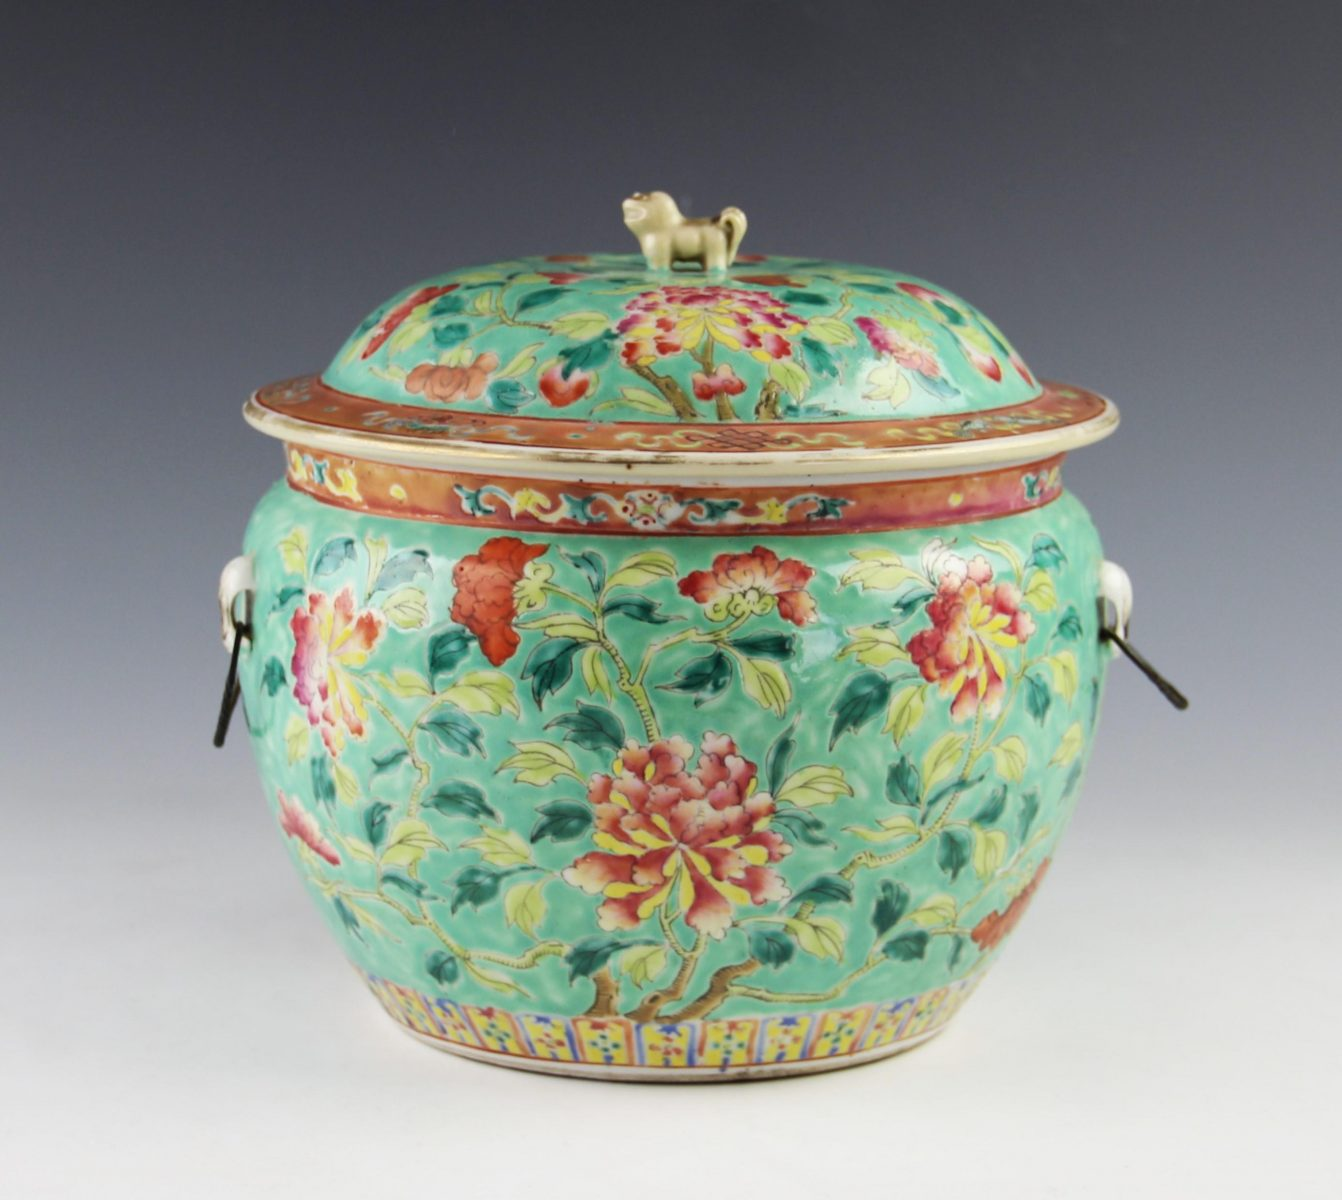 2. A large Chinese porcelain tureen and cover SOLD for £2,800 - May 2018